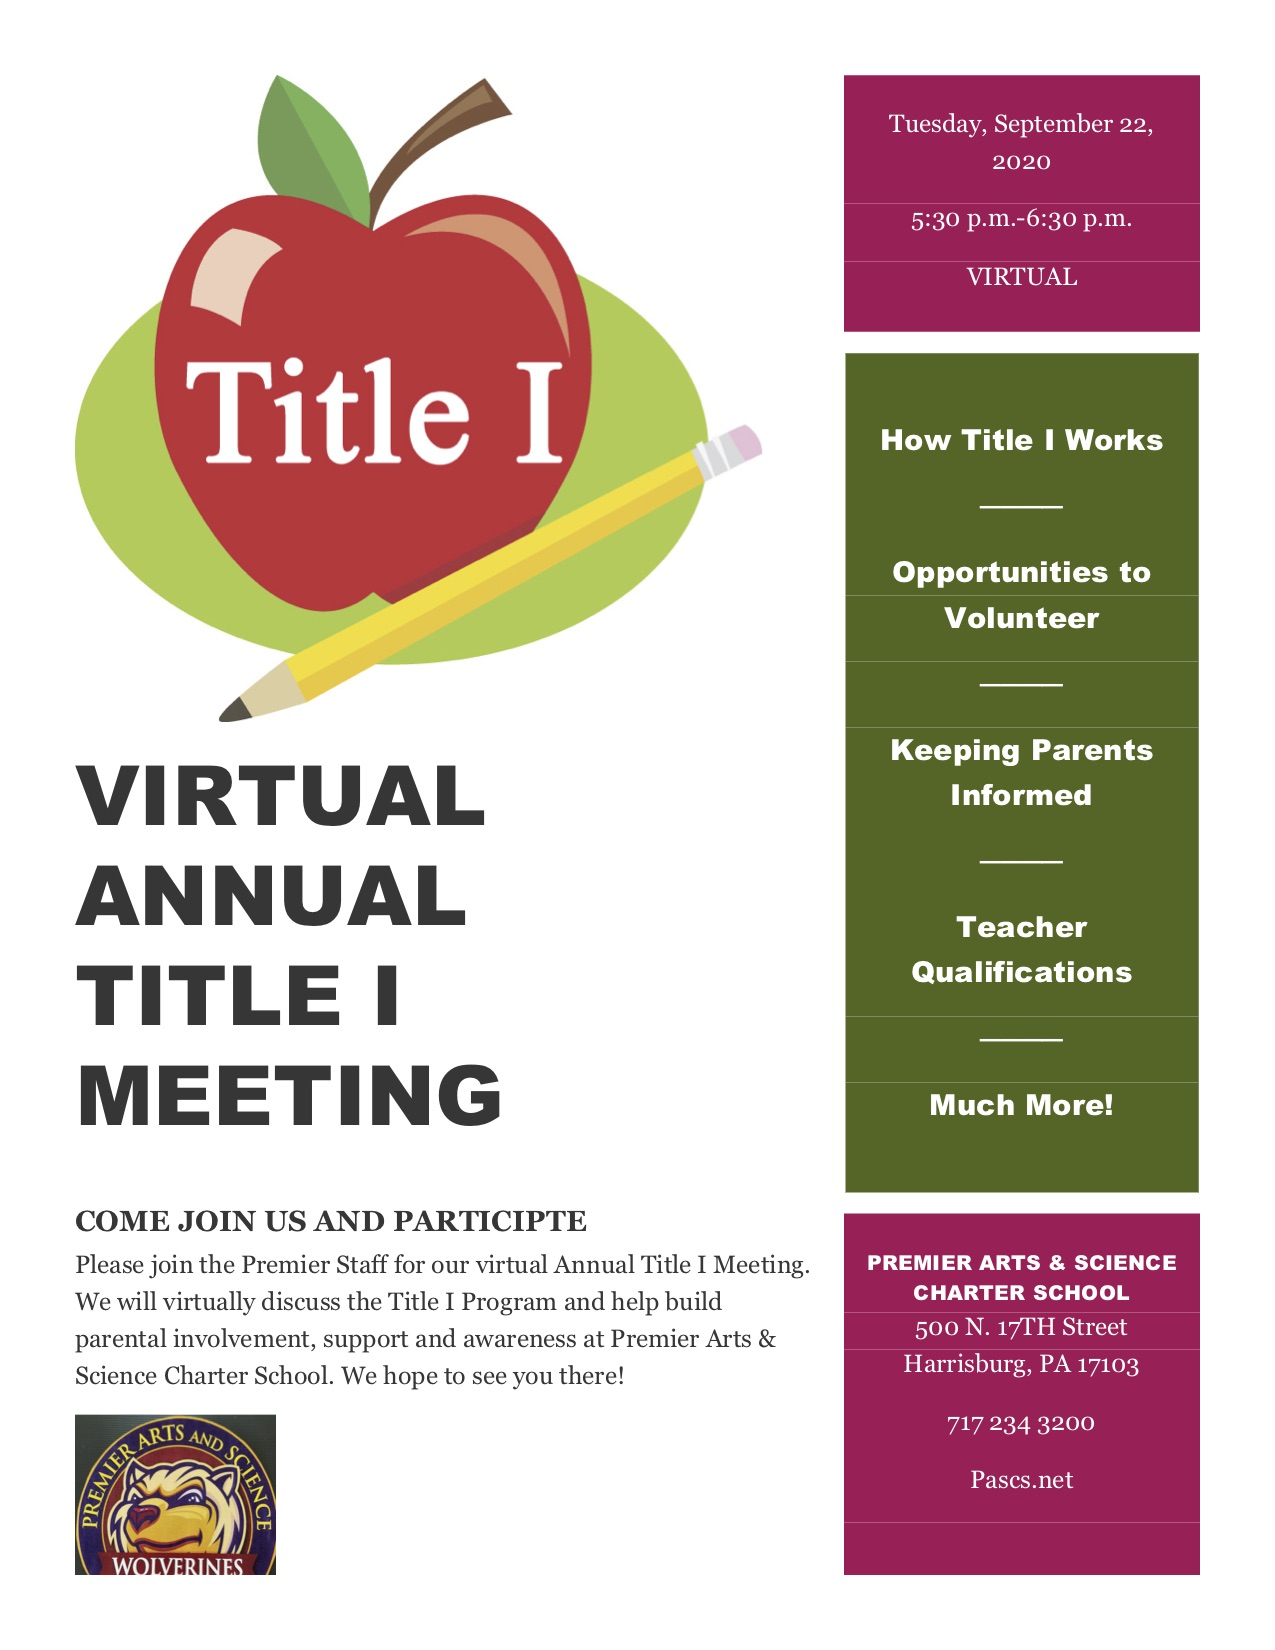 Virtual Annual Title I Meeting